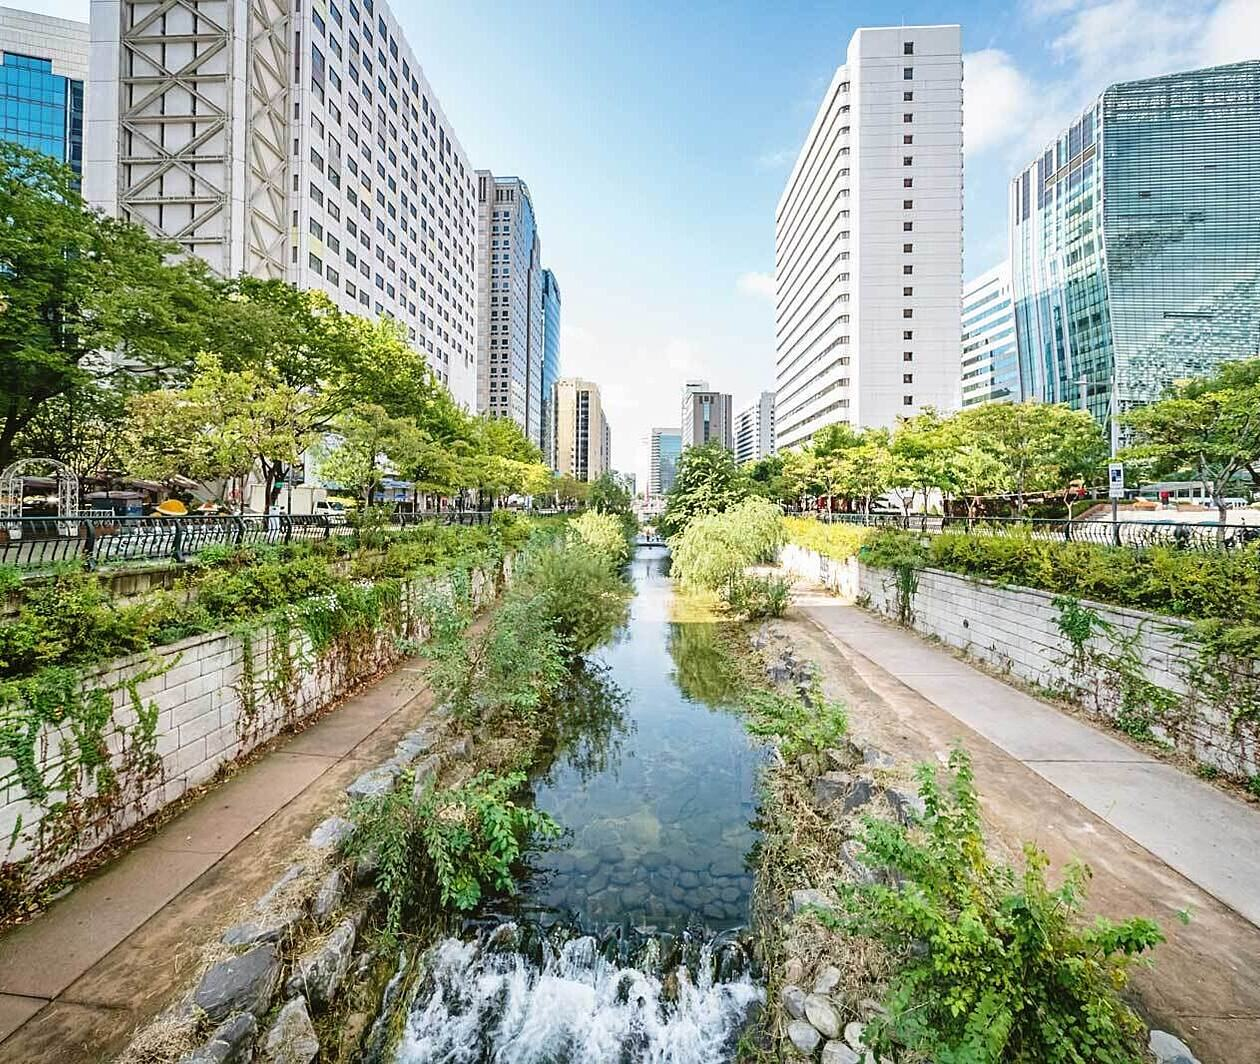 Sustainable Cities: Governing Urban Adaptation Under Climate Change